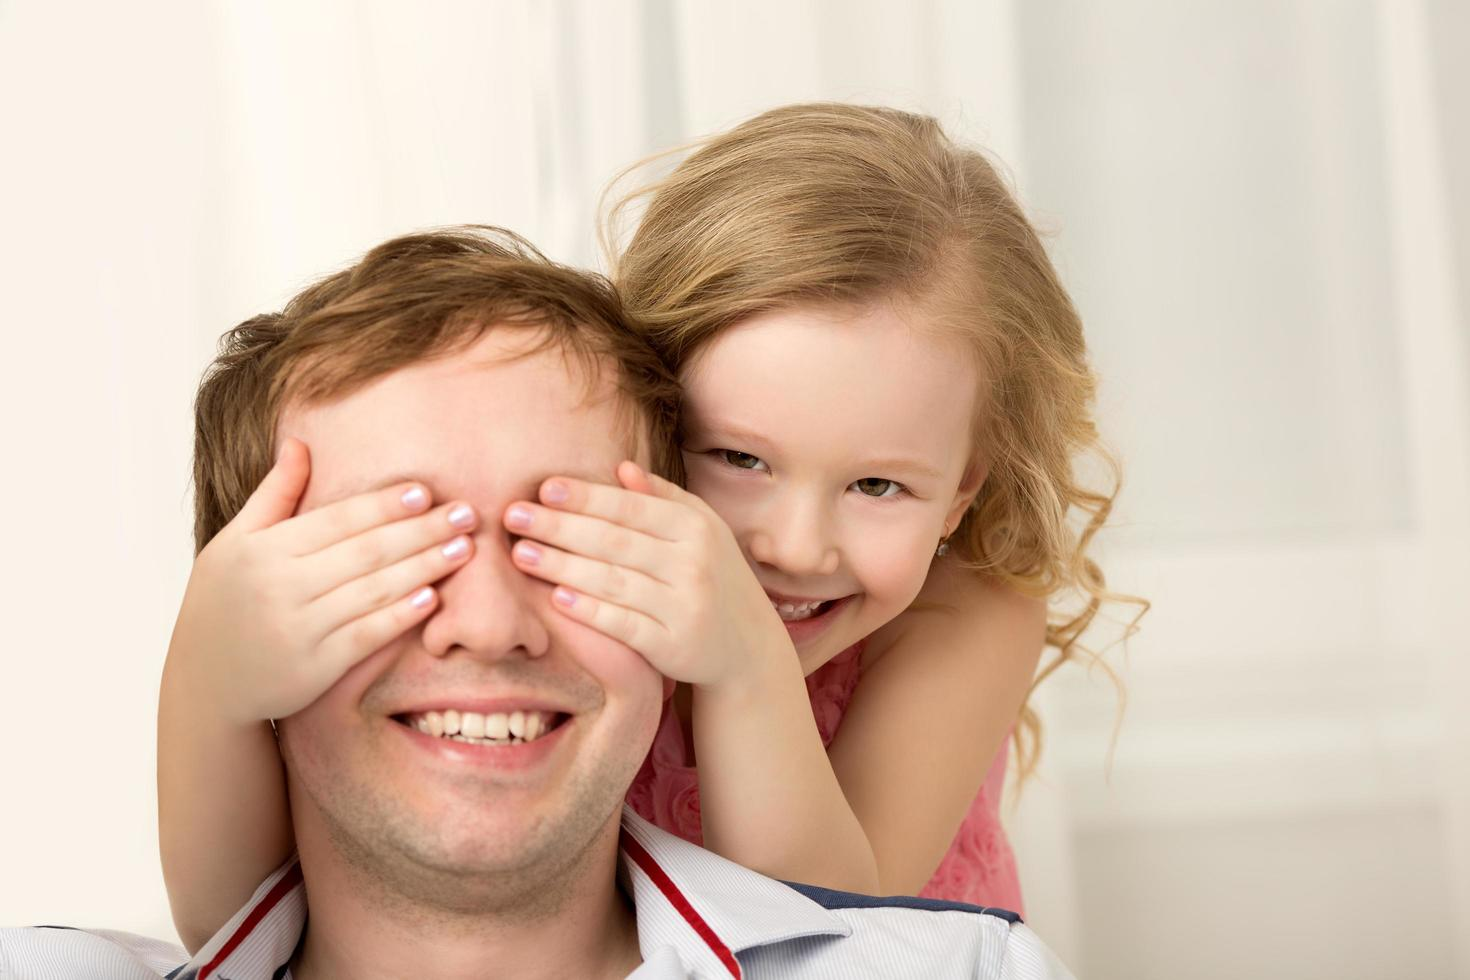 Daughter playing peekaboo with father photo